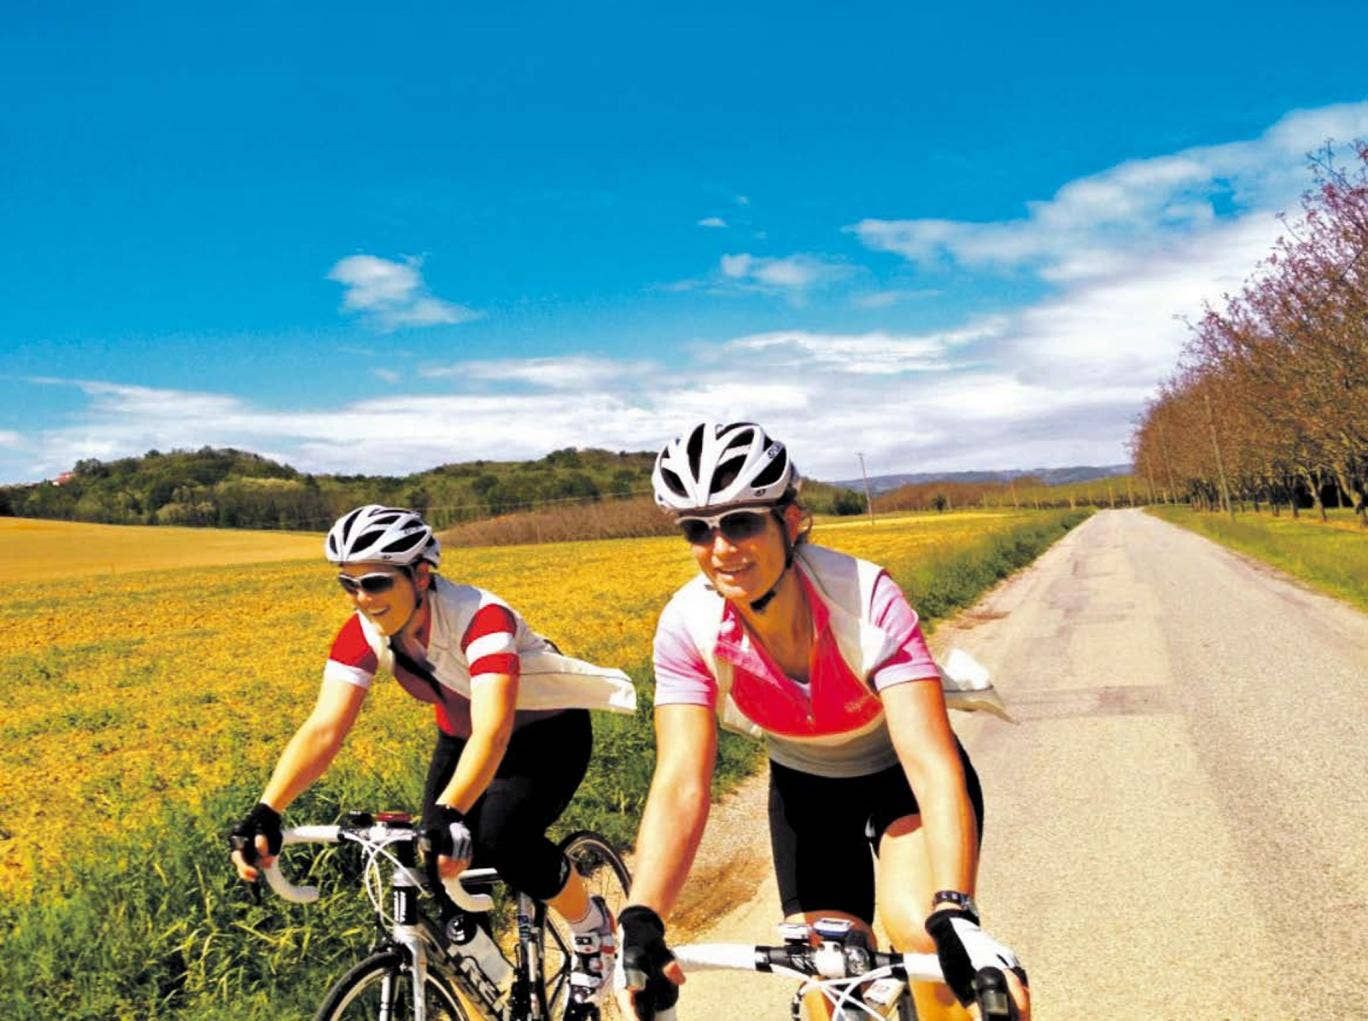 Cycling holidays are ideal for the active traveller